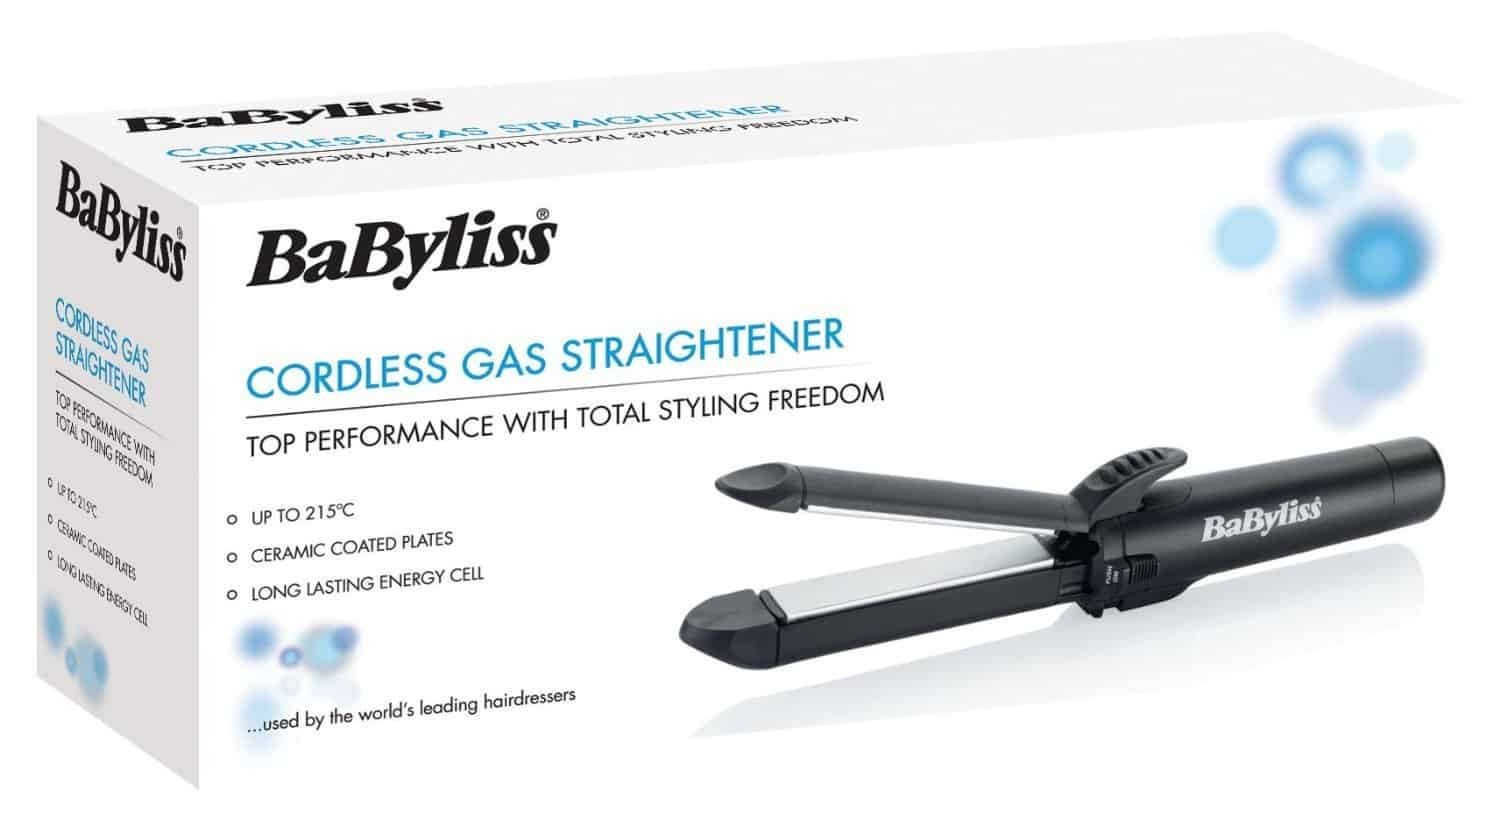 Babyliss Professional Cordless Gas Hair Straighteners package